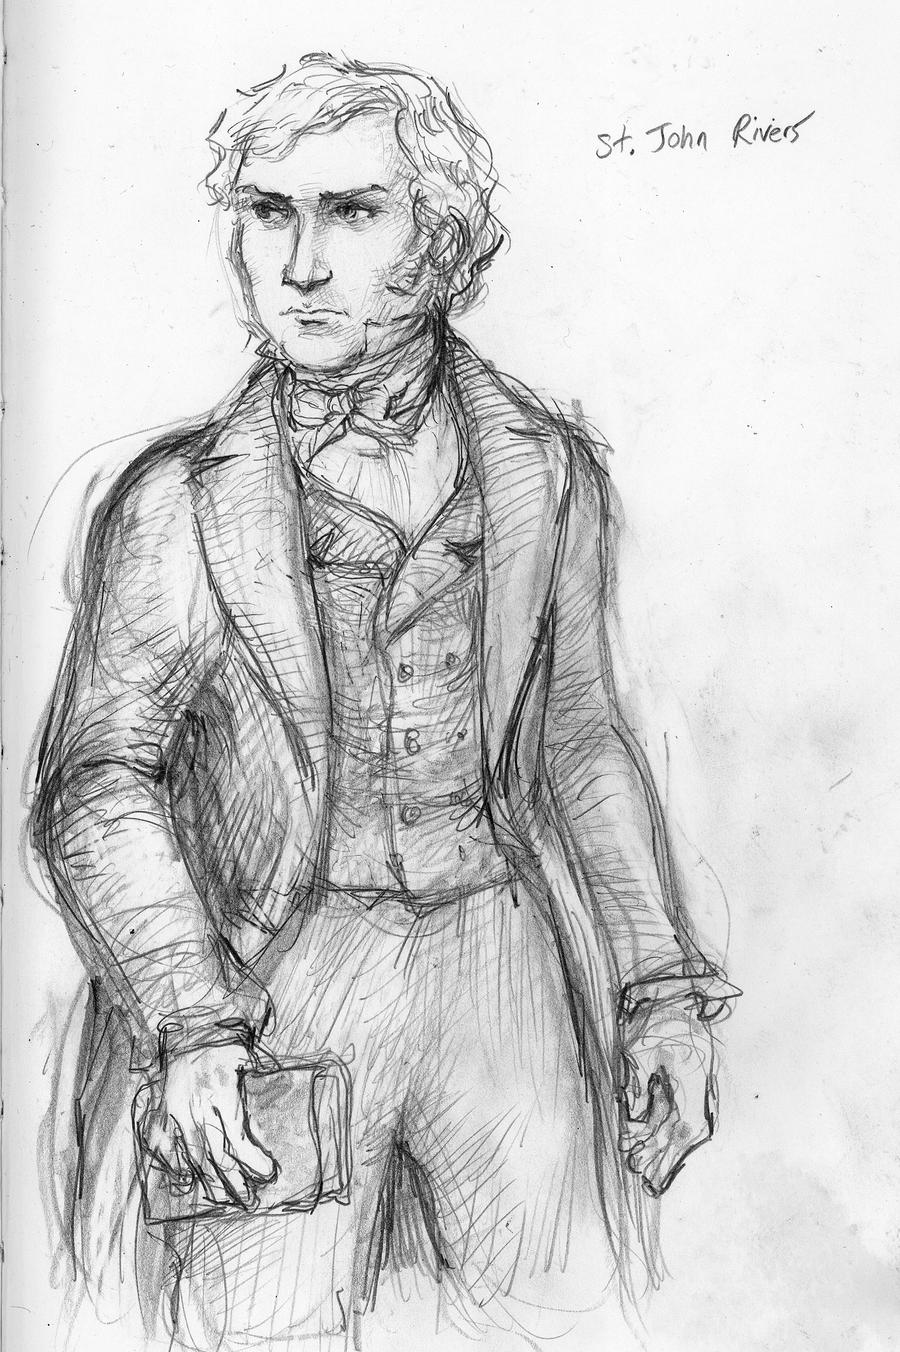 jane eyre st john Get an answer for 'compare the two men in jane eyre's life: st john rivers and rochester what is their appeal to jane and her reaction to themit is a comparitive essay and i need 3 main pointss' and find homework help for other jane eyre.